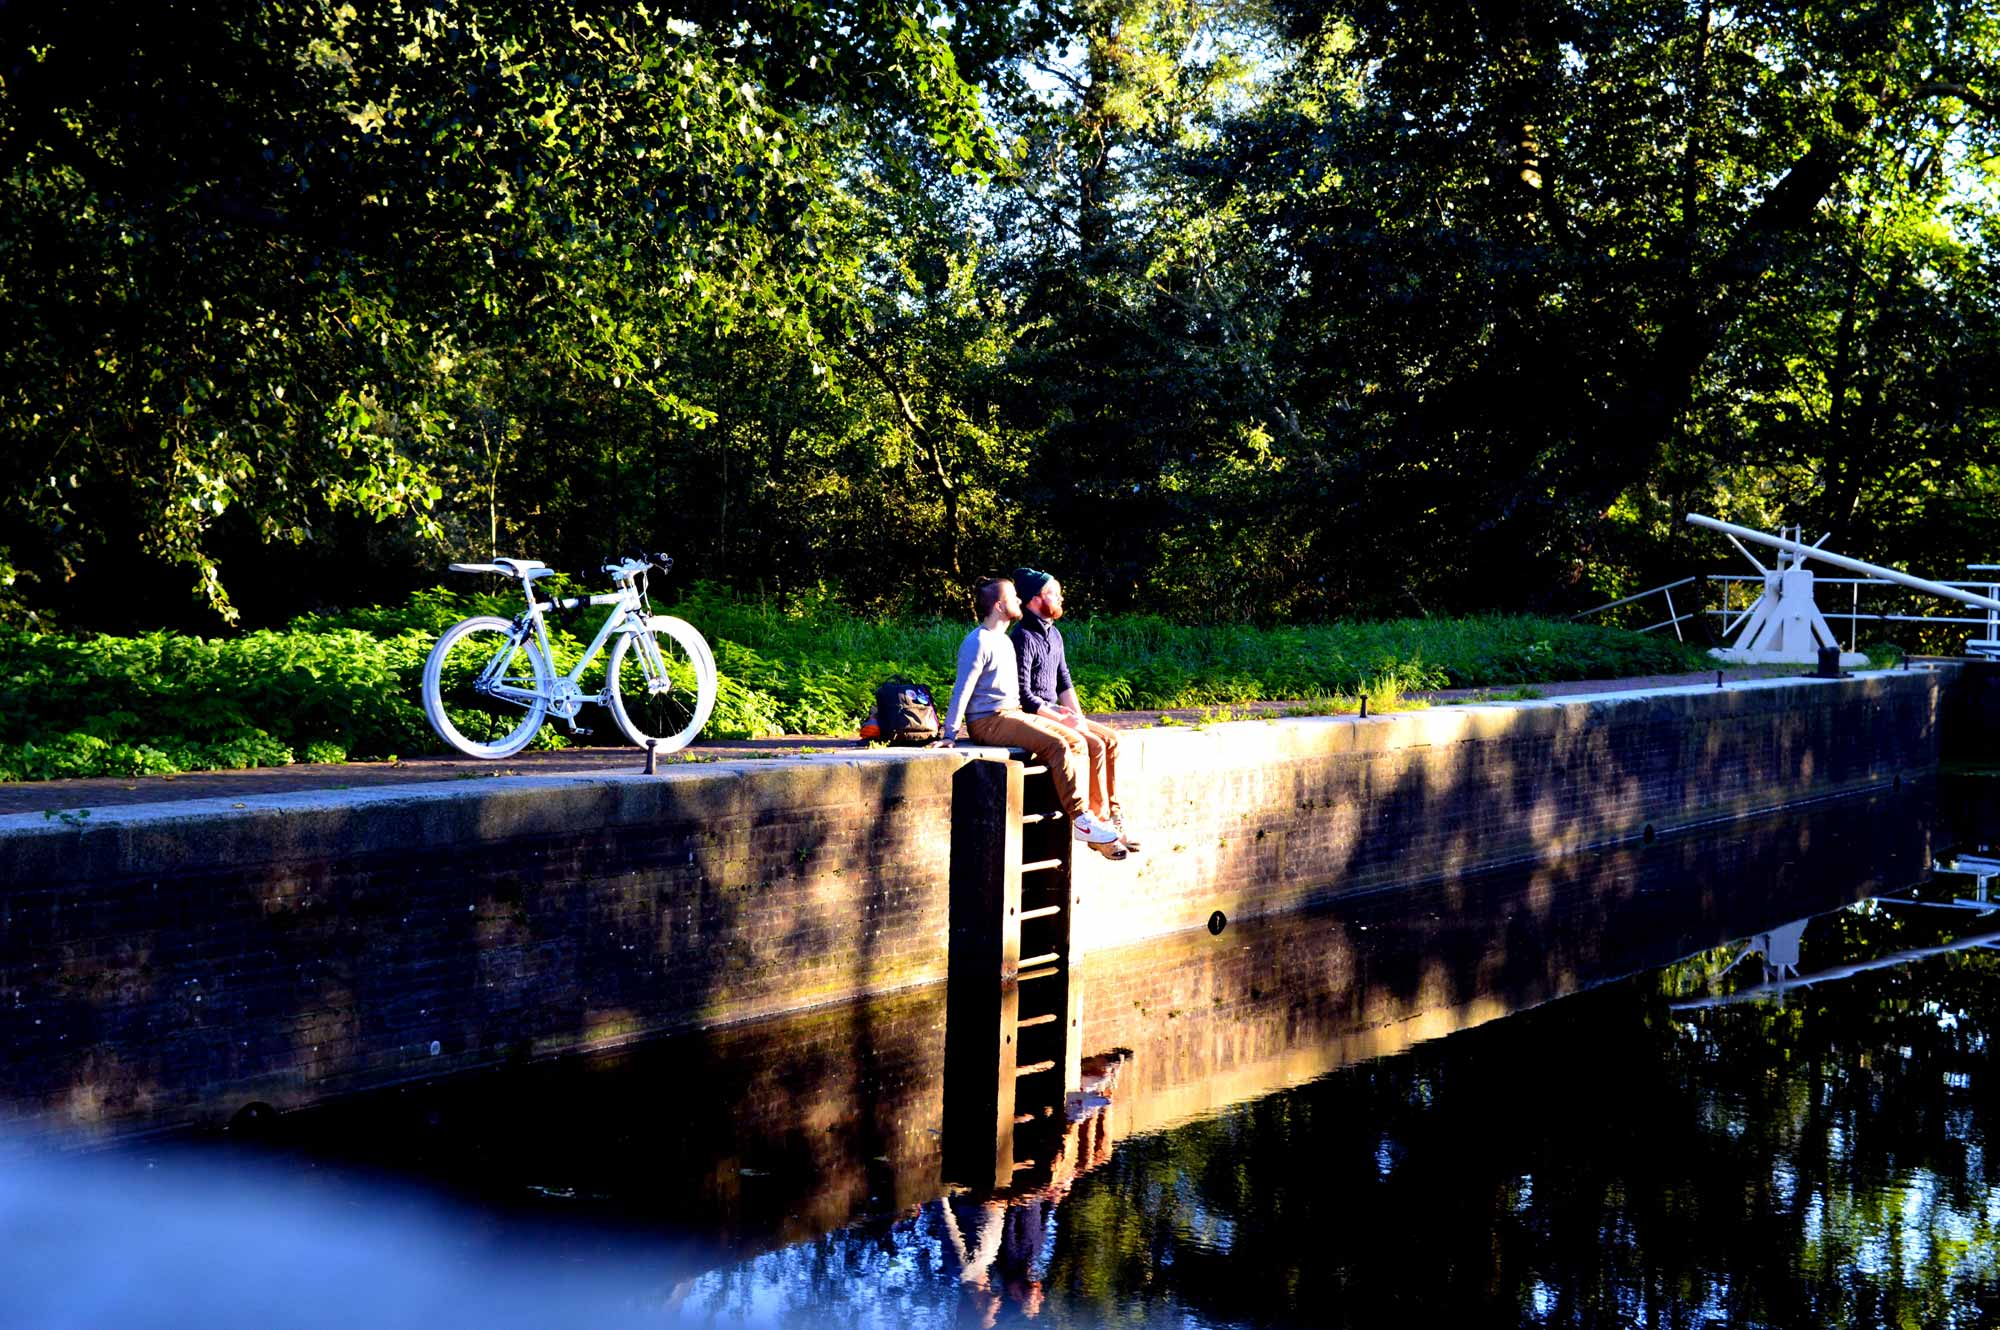 Gay Couple Biking Trips Amsterdam Forest © CoupleofMen.com